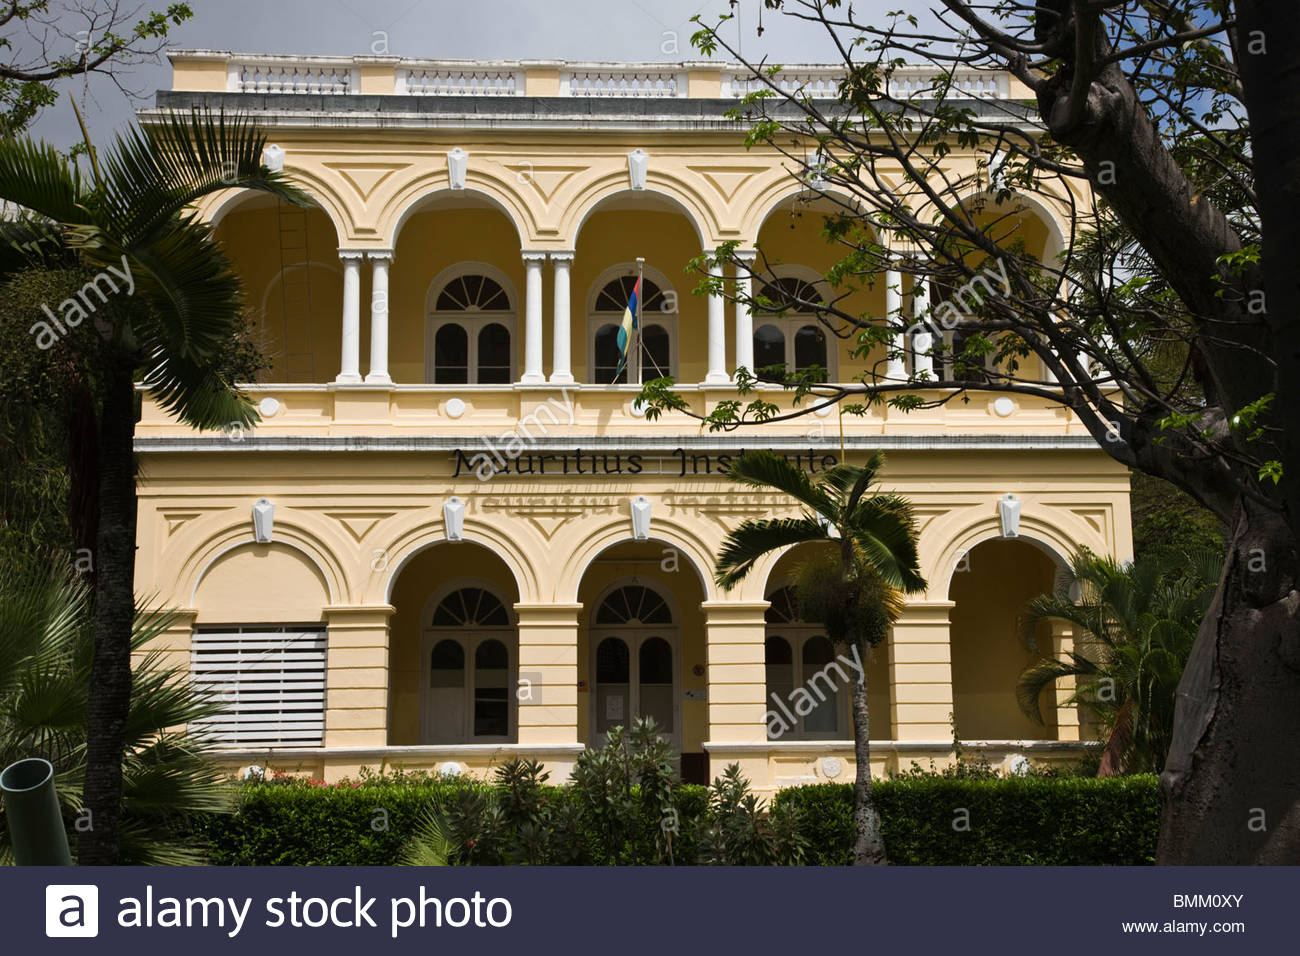 Natural History Museum & Mauritius Institute Port Louis, Mauritius, Port Louis, Mauritius Institue Building at the Natural ...